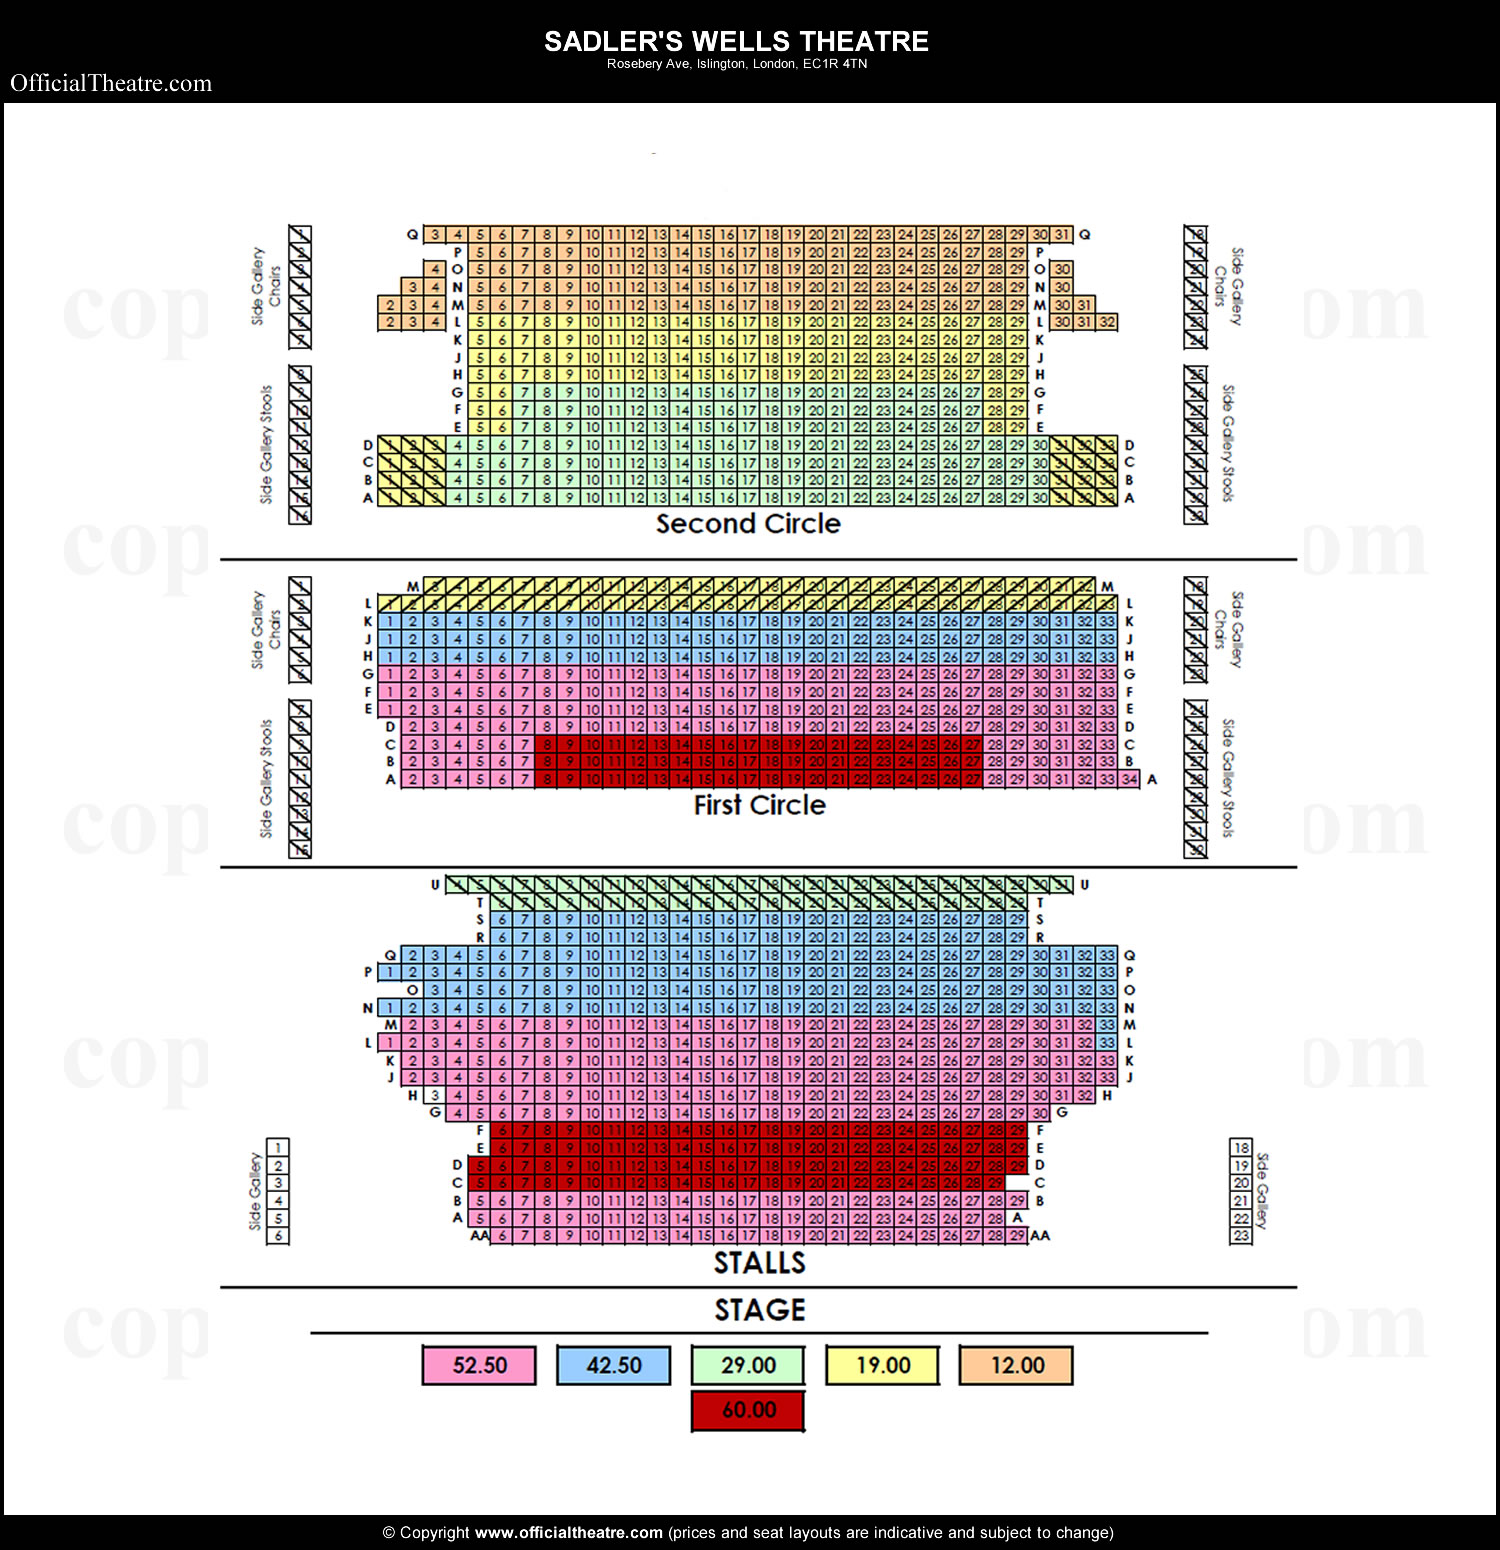 Sadler's Wells seating plan